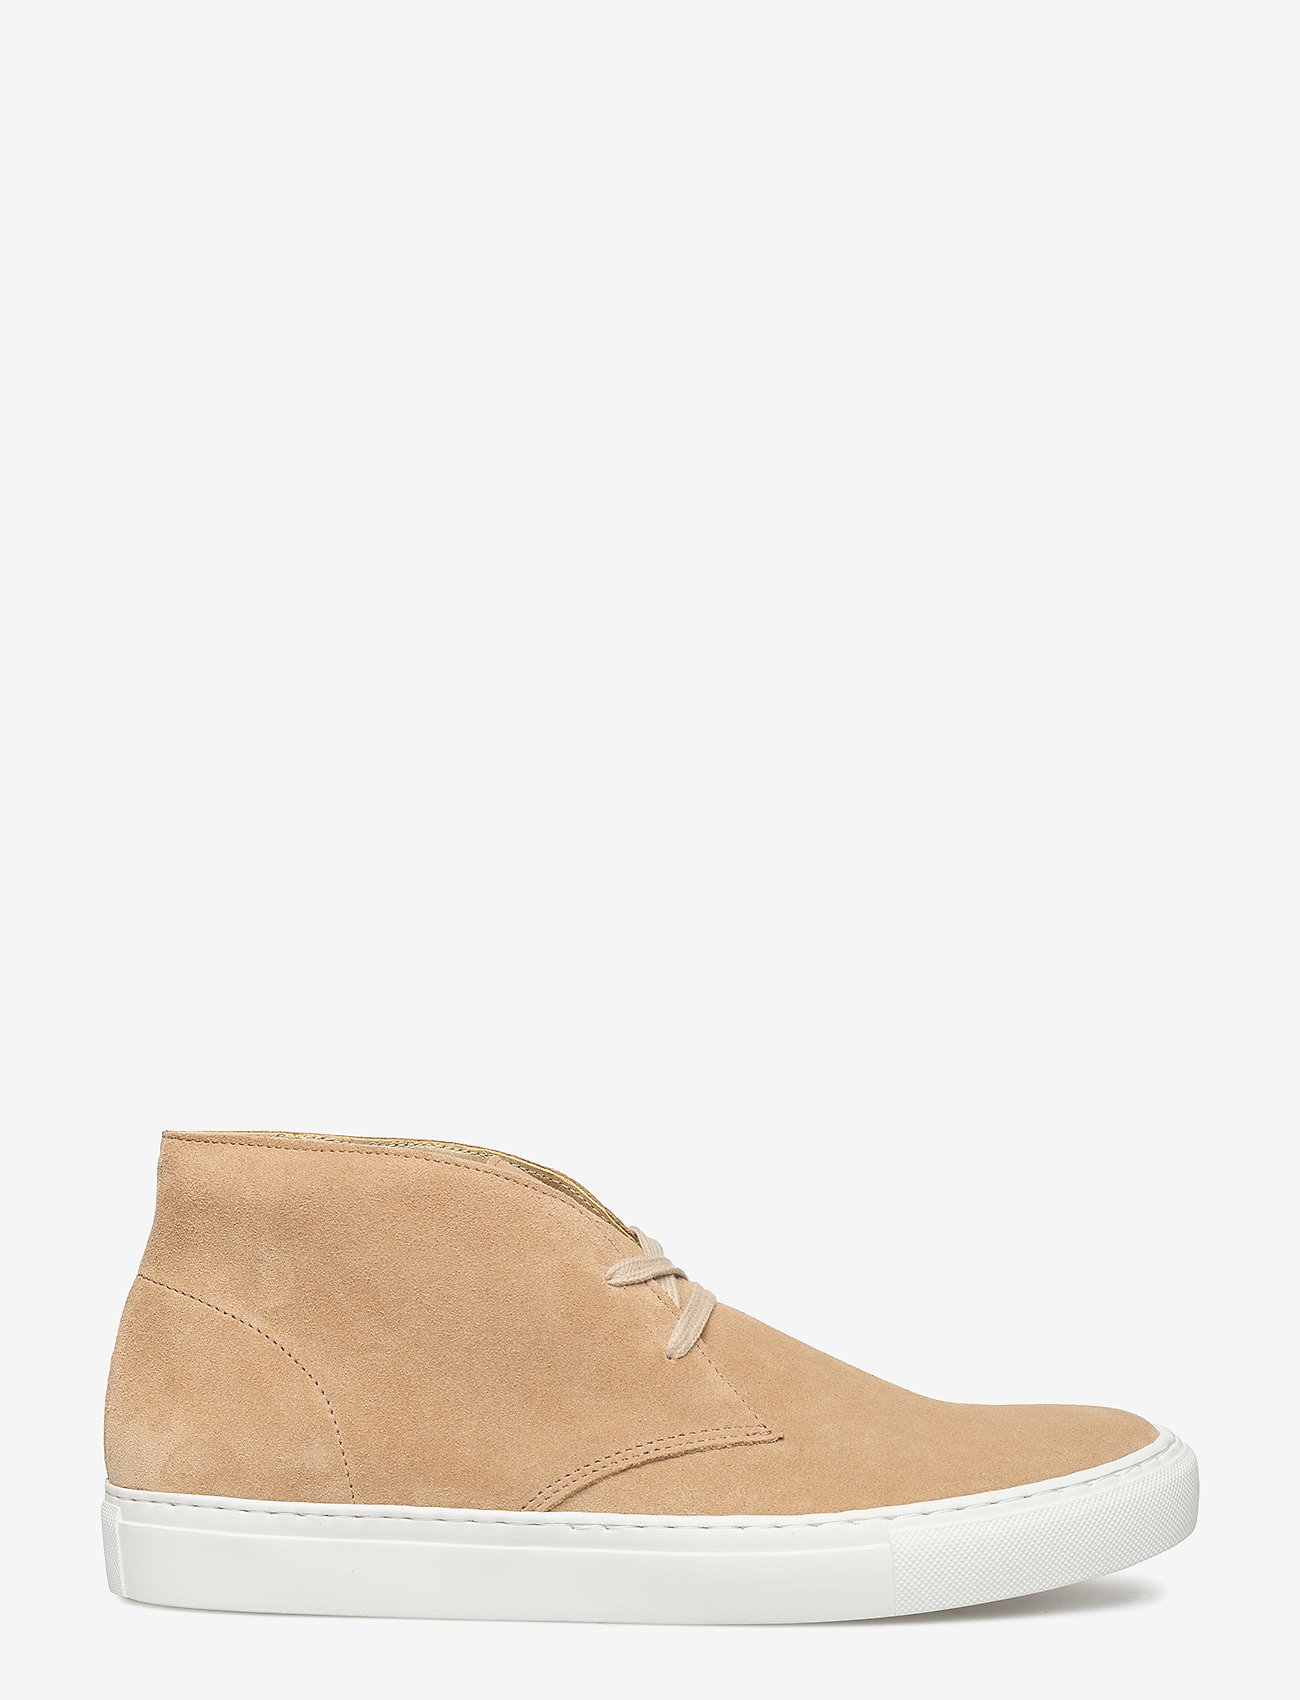 Shoe The Bear - LIAM S - desert boots - sand - 1